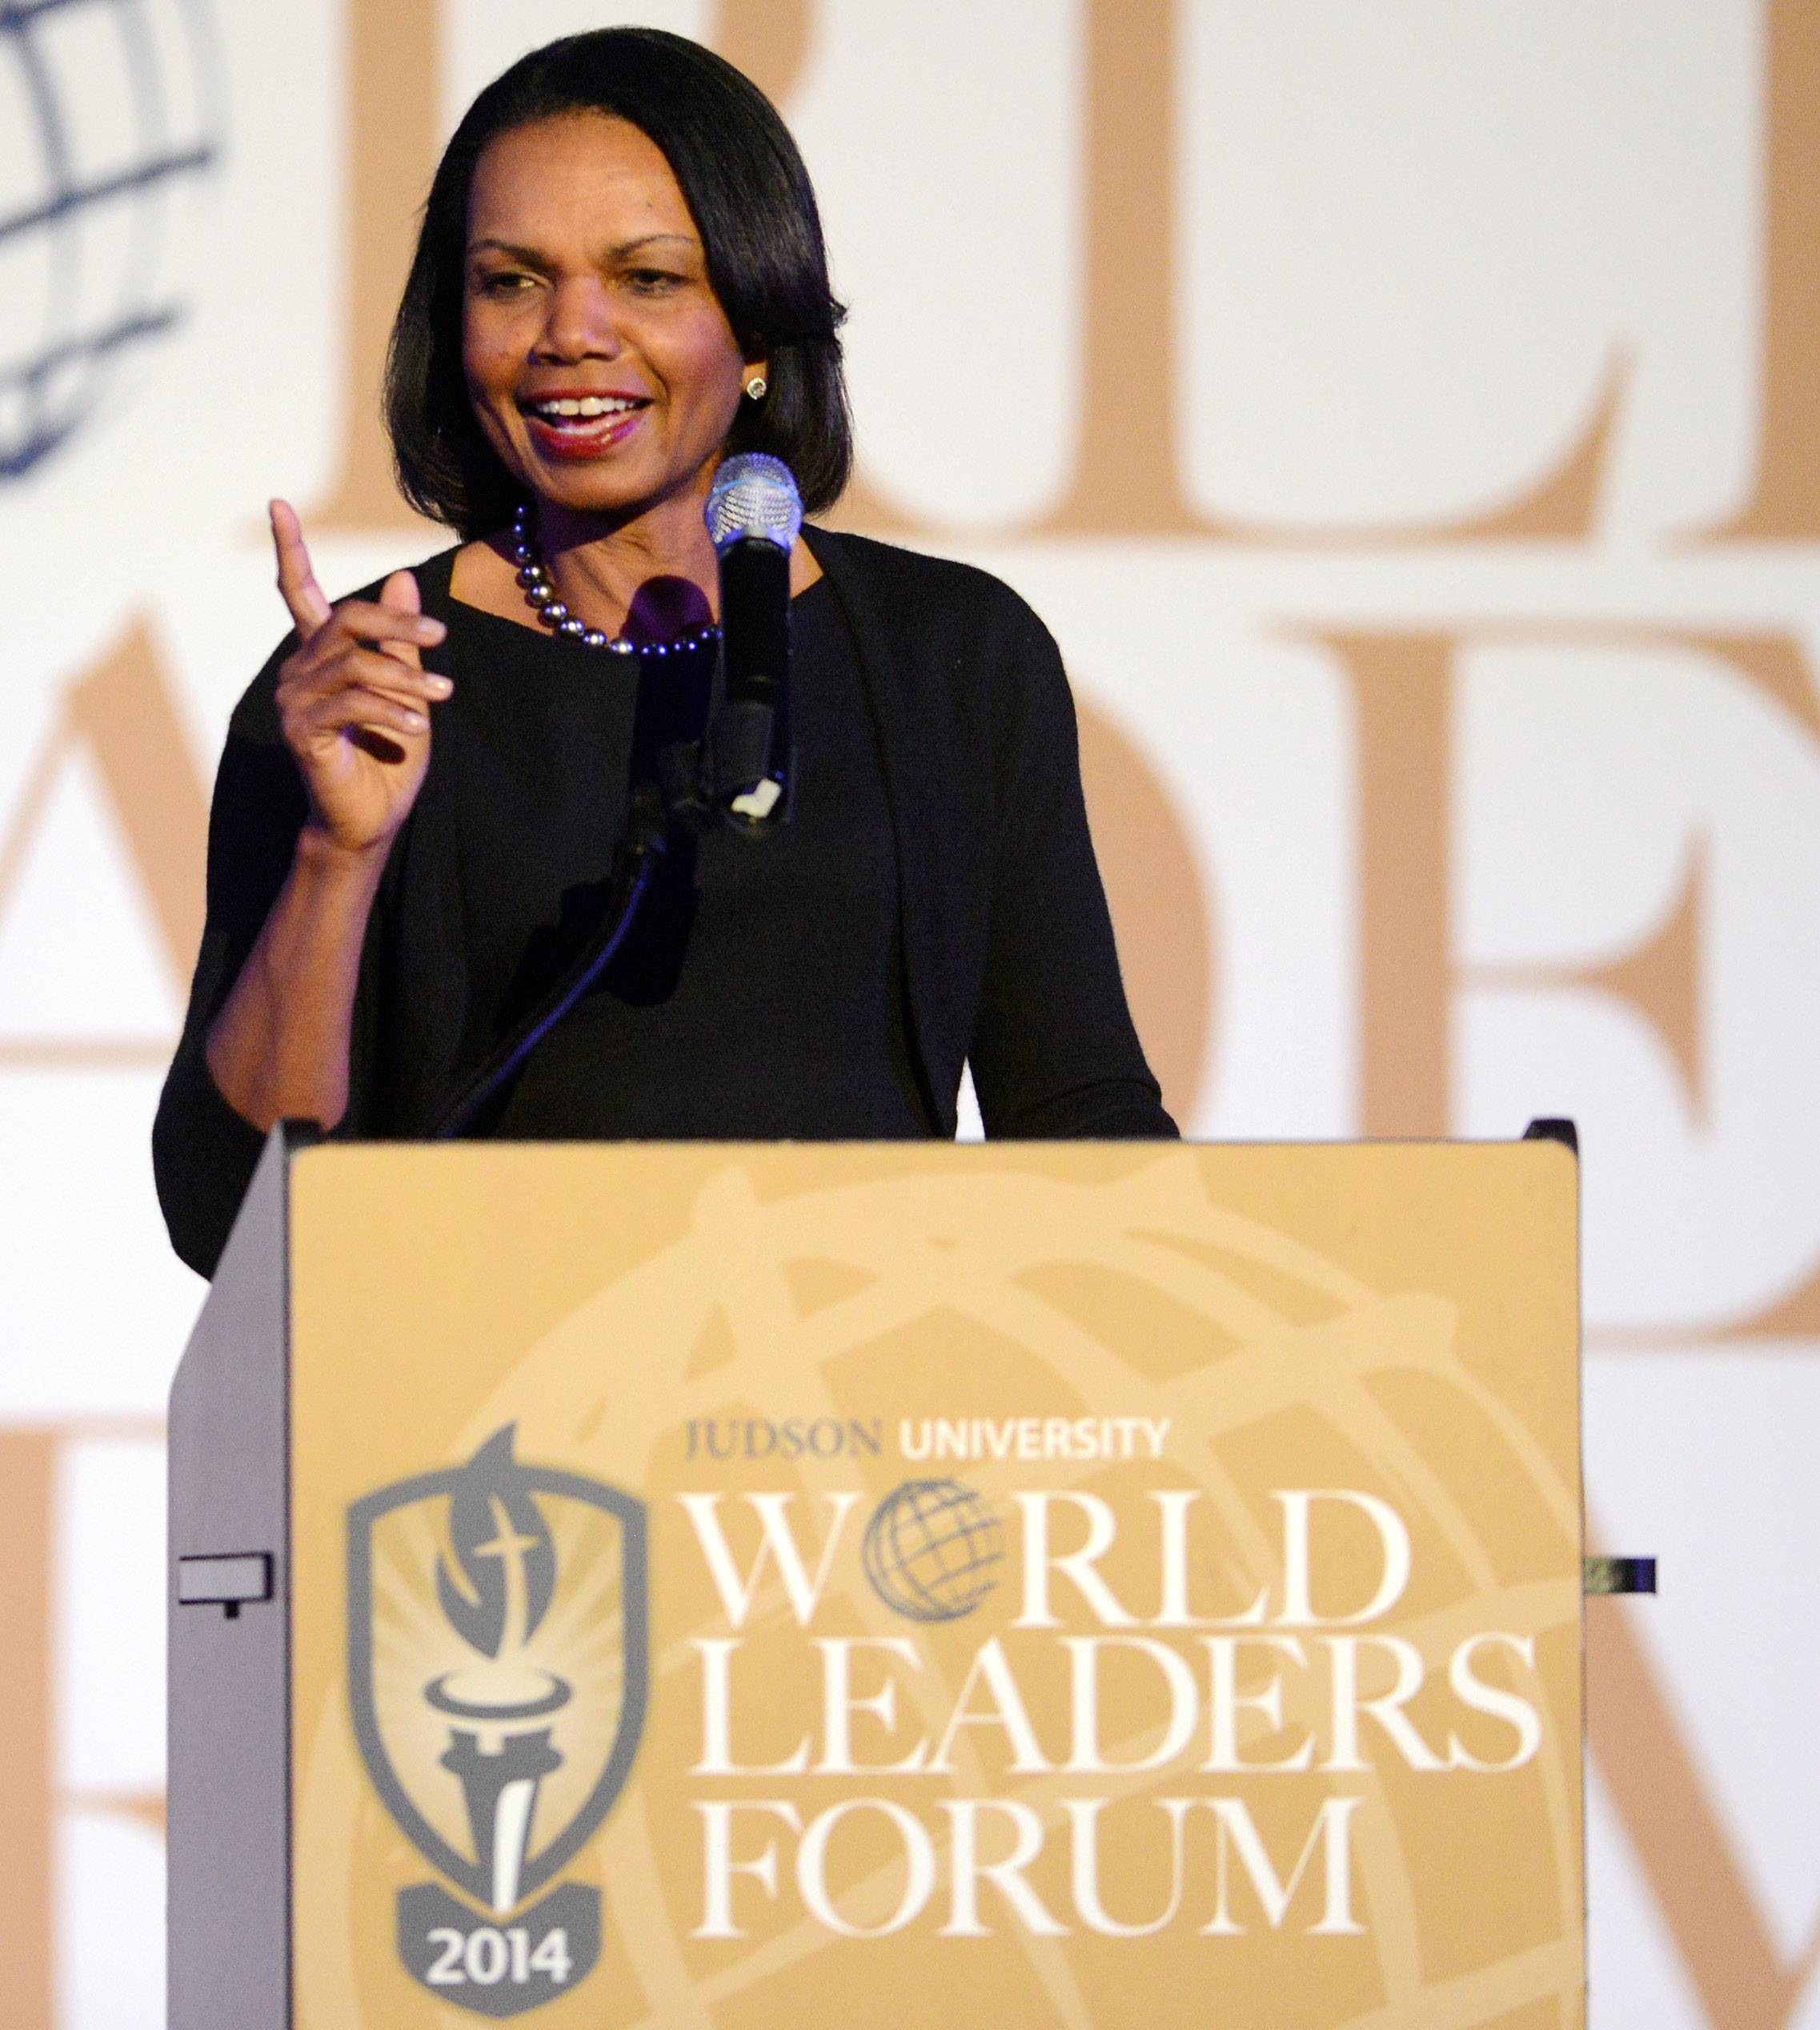 leadership style of condoleezza rice Condoleezza rice leadership style condoleezza rice net worth is $4 million how much does the secretary of state make in salary each year how much does the president make.